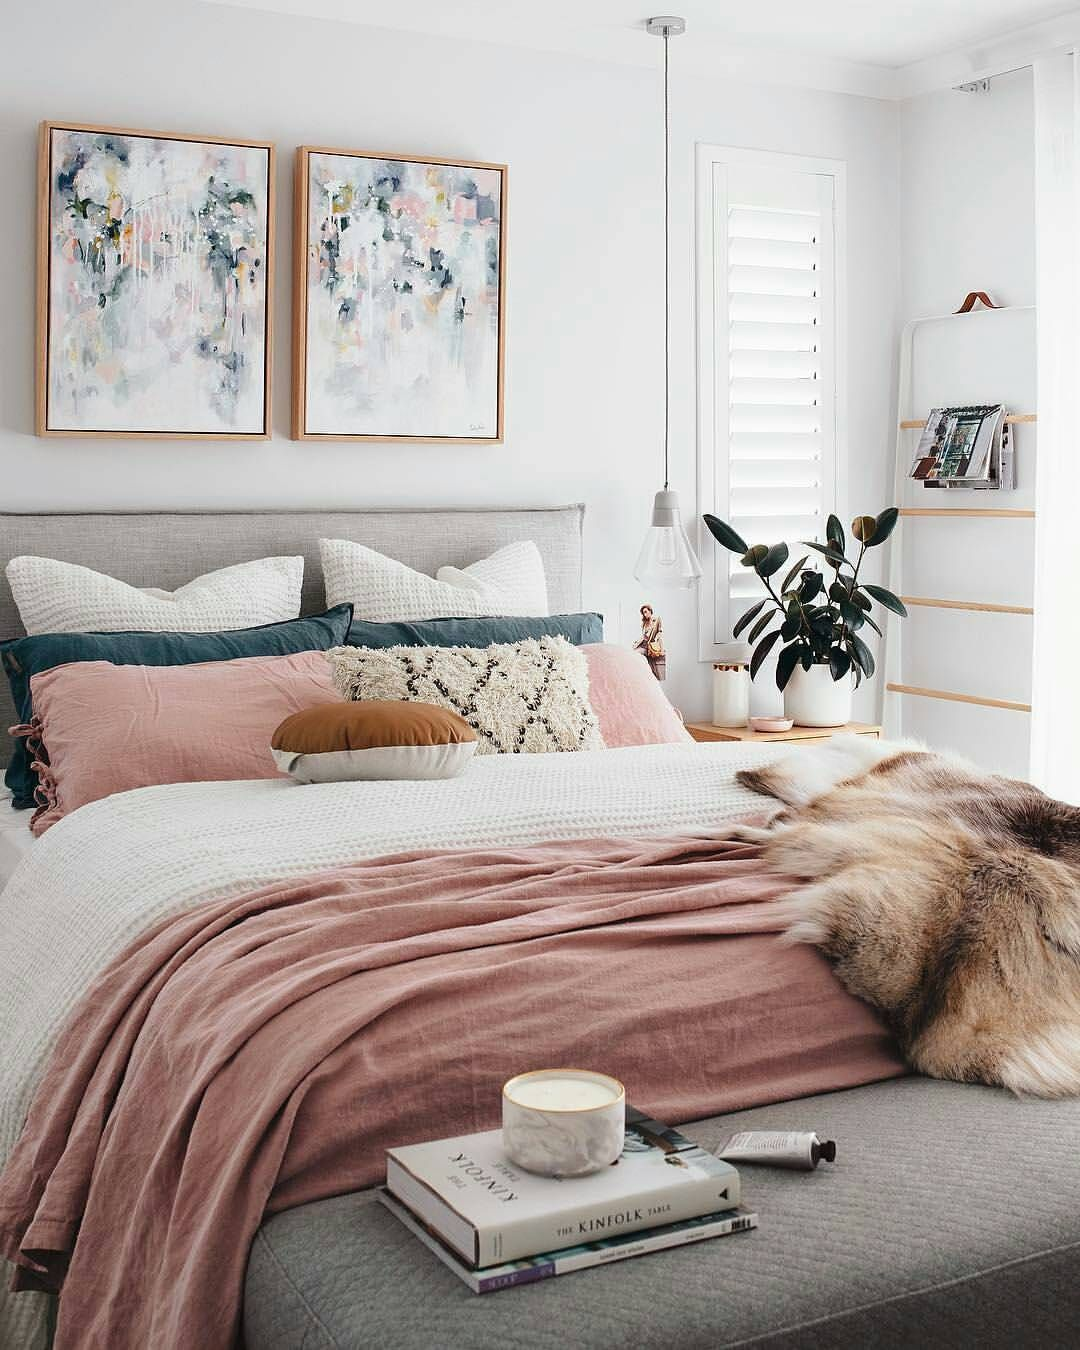 4 Simple Tips To Make Your Bedroom Look Extra Cozy  Career Girl